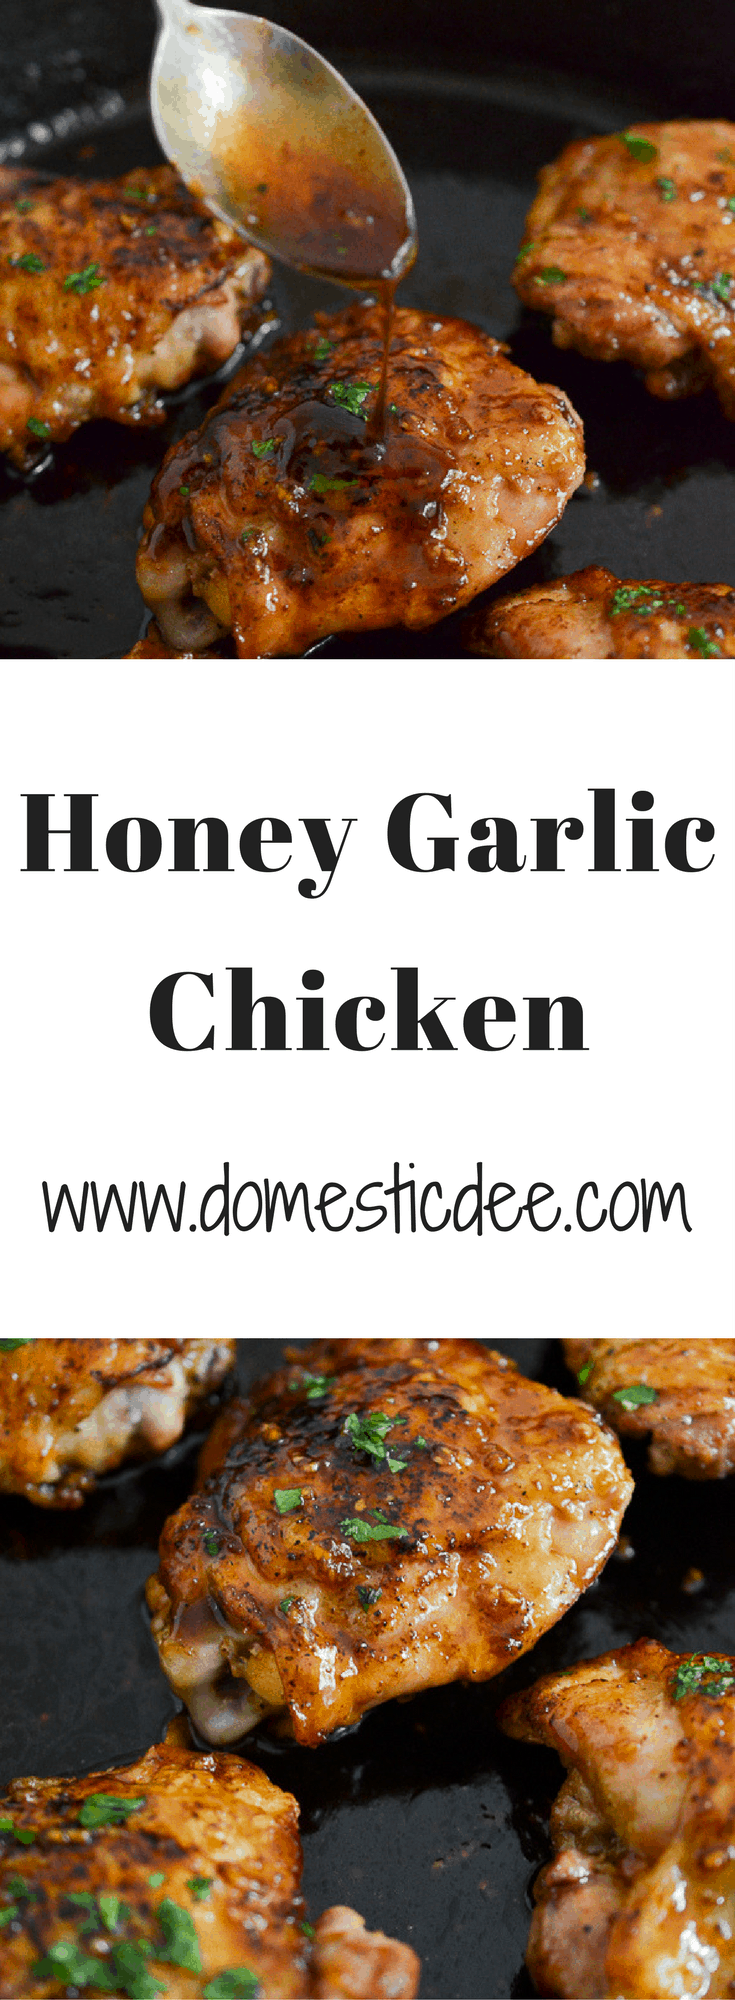 Honey Garlic Chicken-This Honey Garlic Chicken is smothered in a succulent sauce. It is easy to make and includes ingredients that are most likely already in your kitchen. I www.domesticdee.com